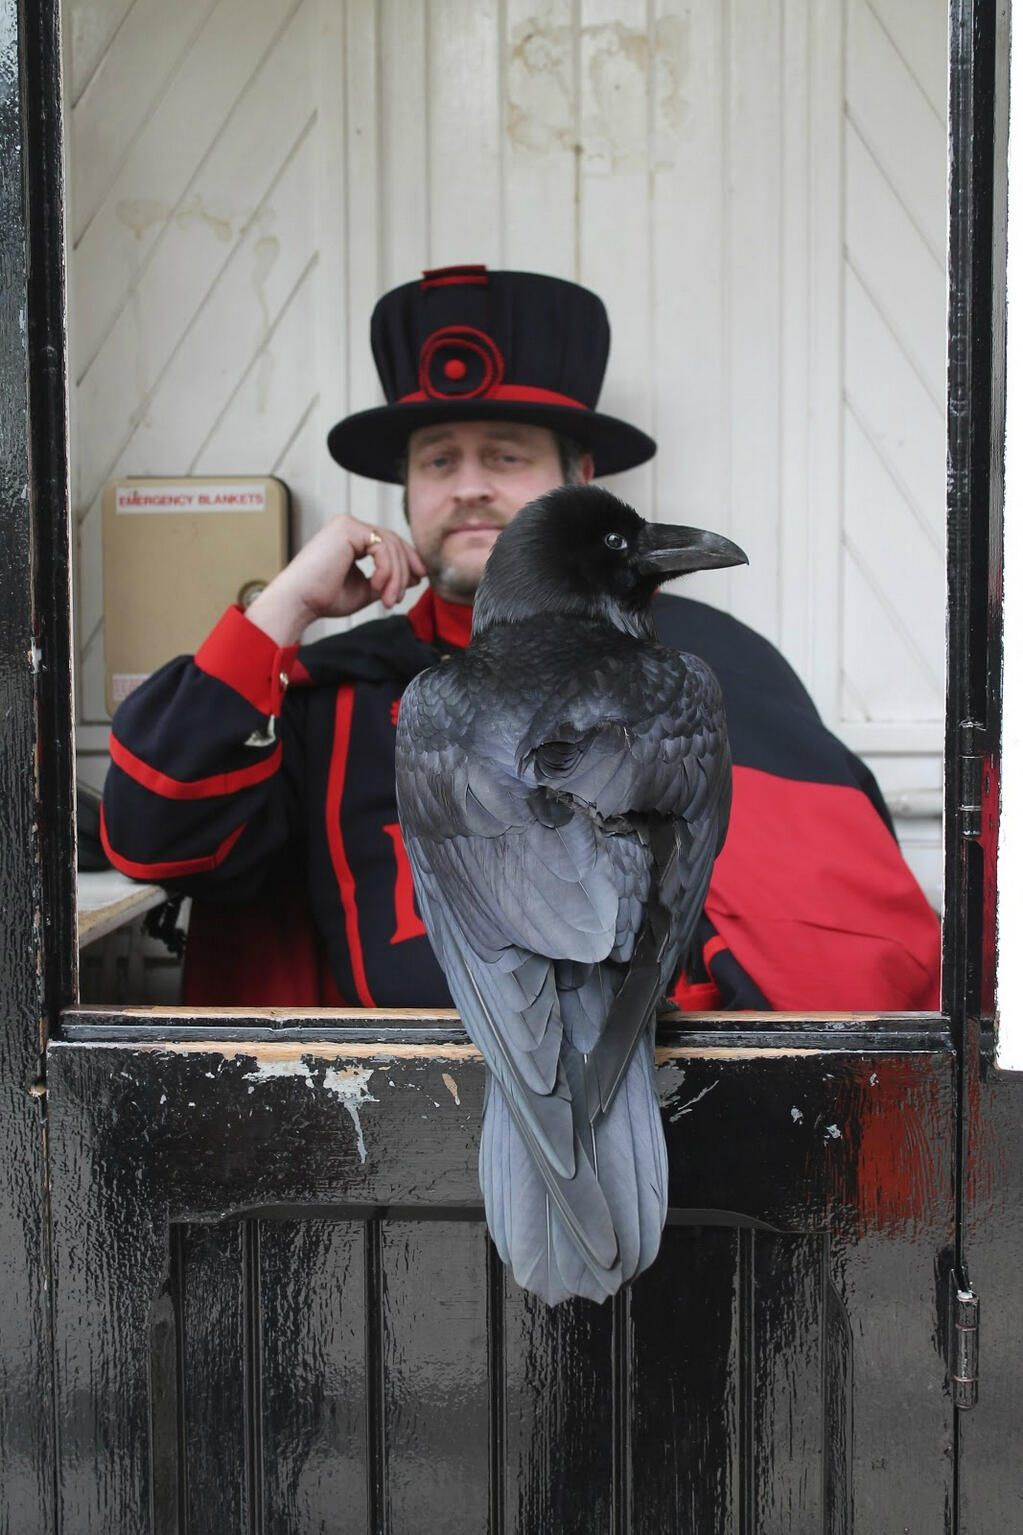 A Beefeater and Merlin the raven at the Tower | Tower of london, Jackdaw,  England and scotland